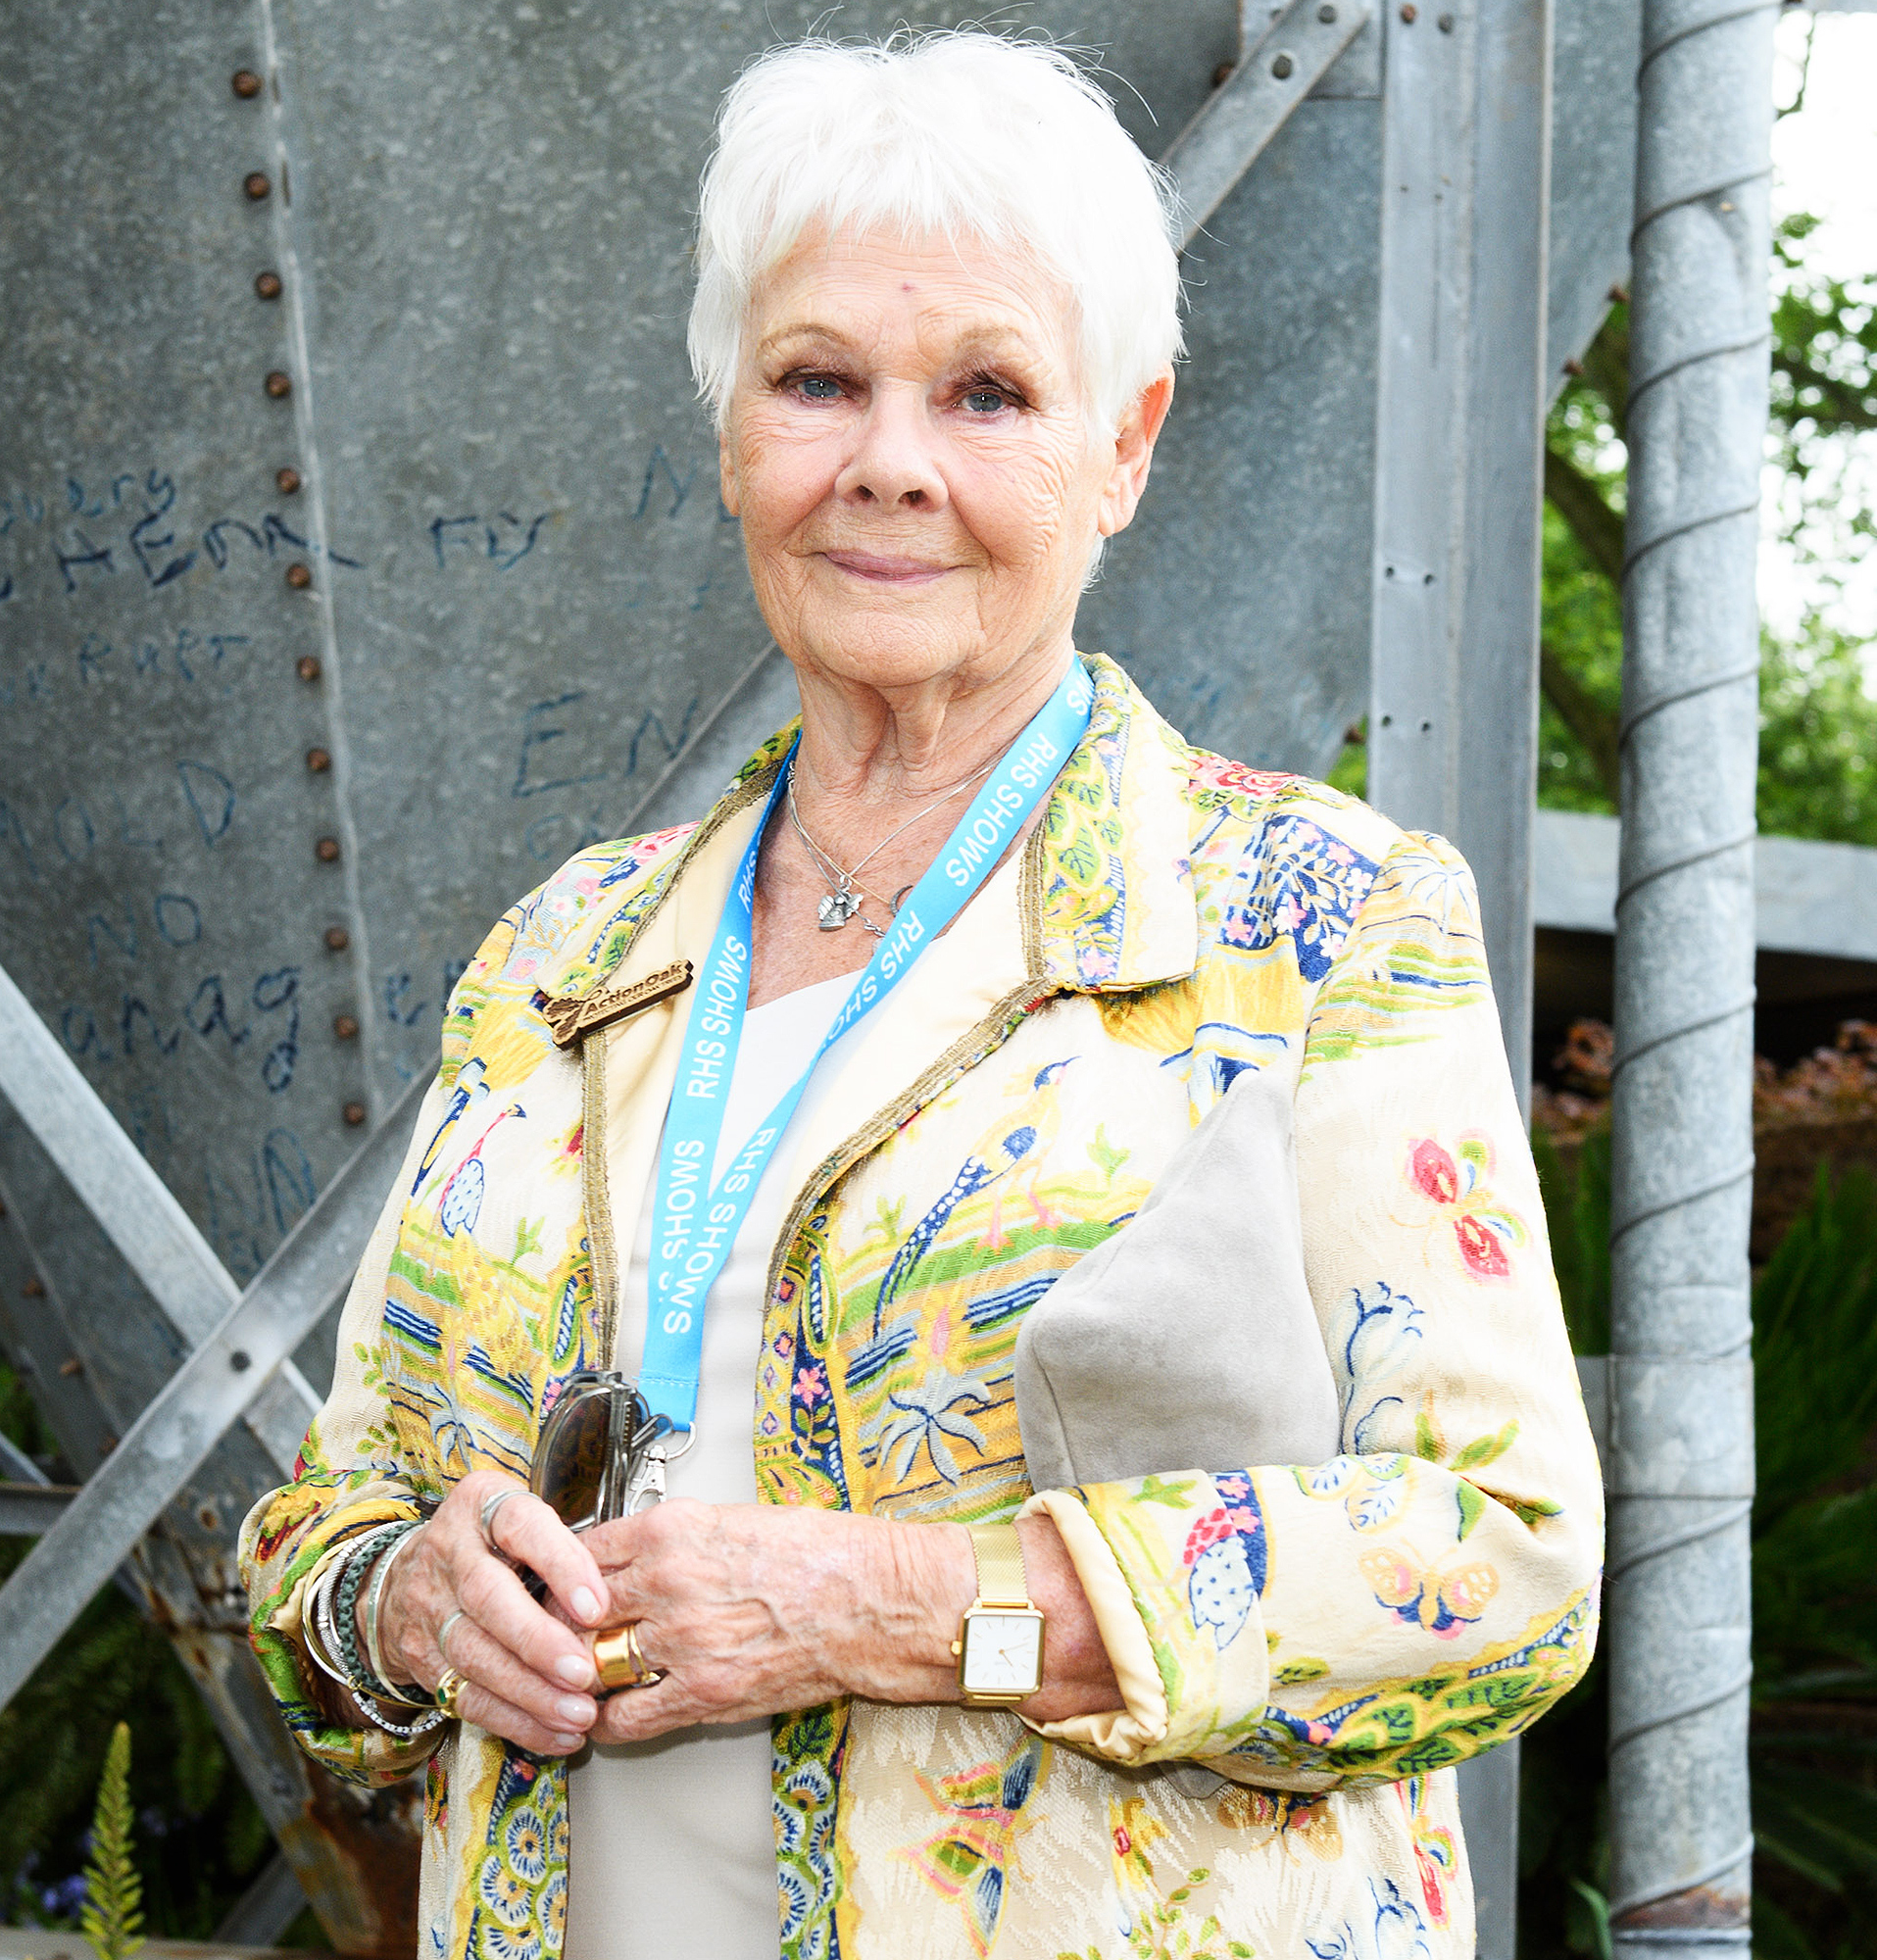 Dame Judi Dench Says Filming TikTok Videos Saved Her Life